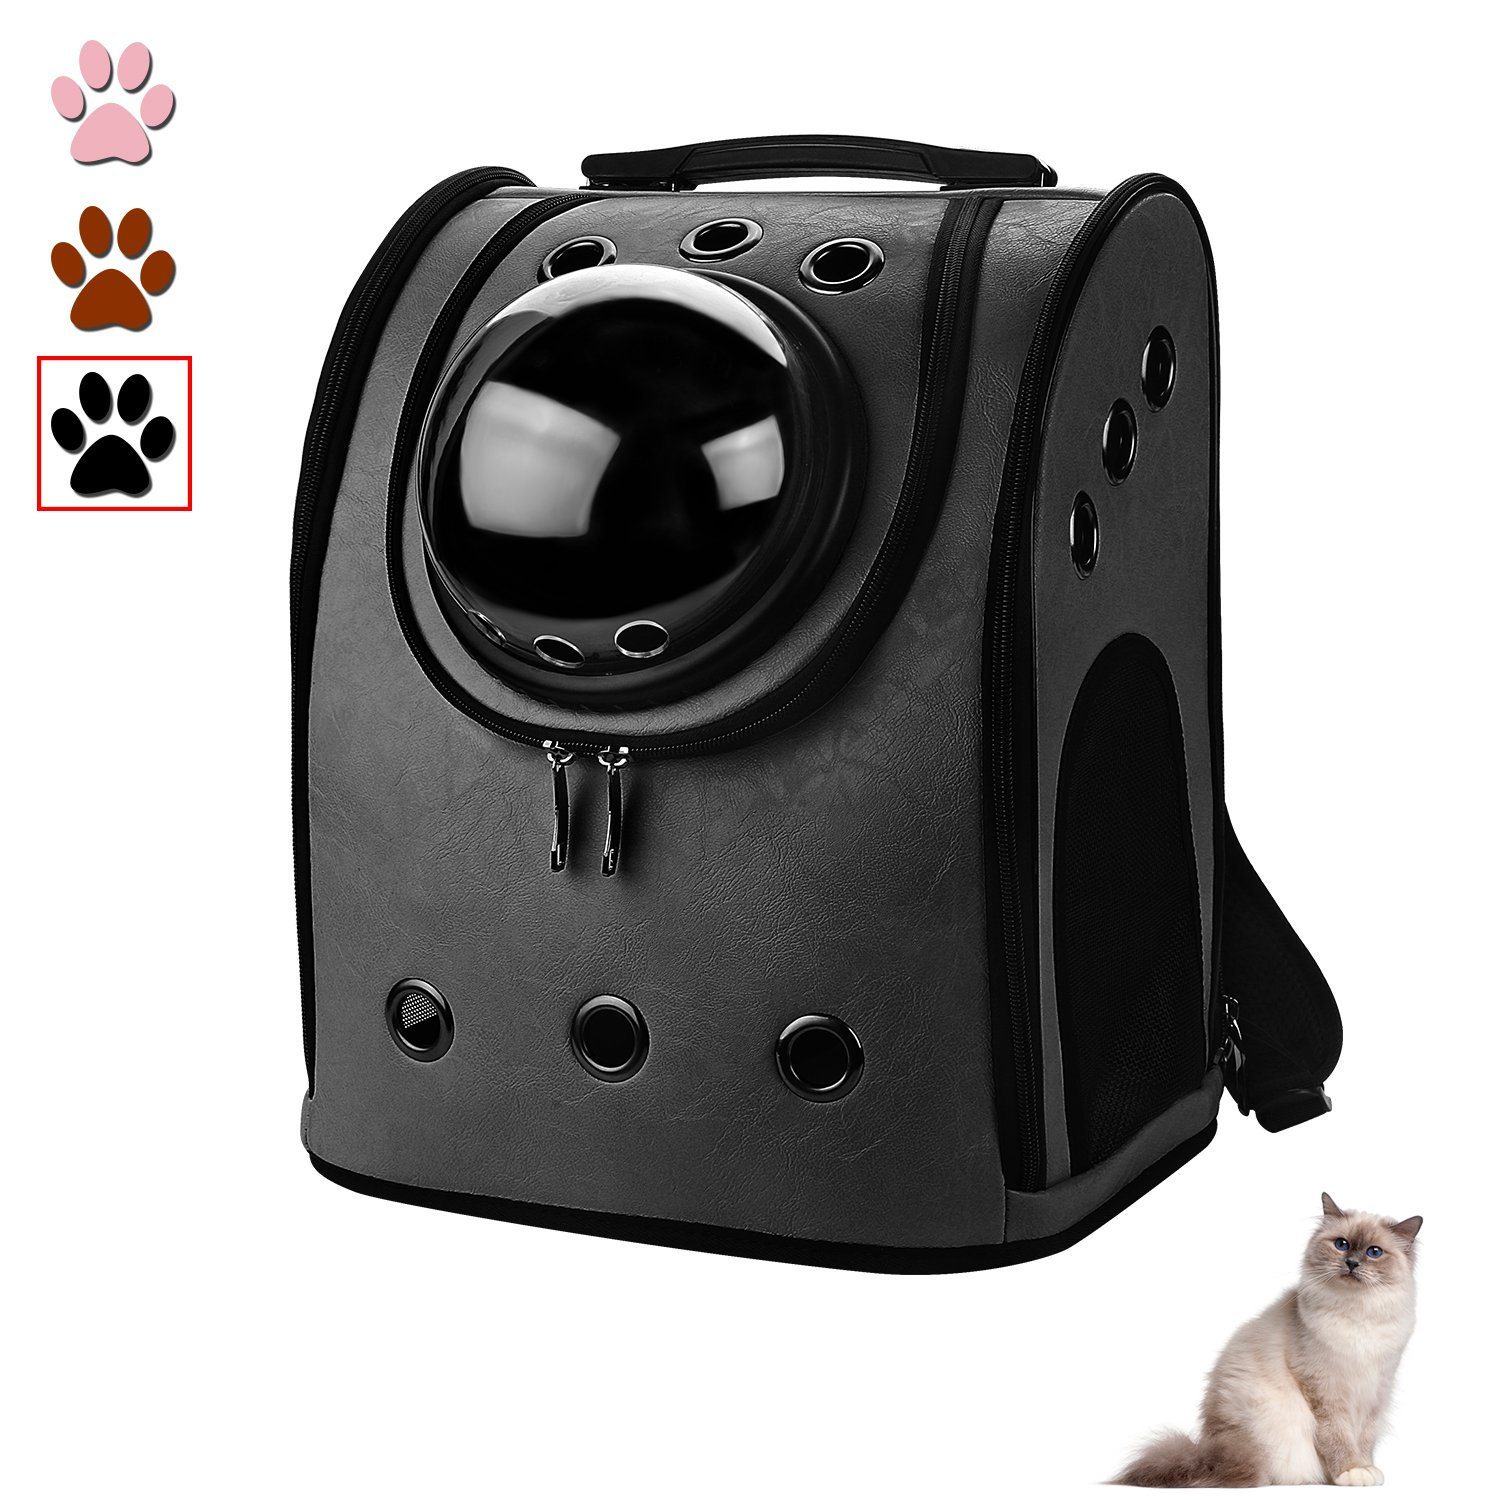 Blitzwolf Pet Outdoor Exercise Space Capsule Leather Carrier Backpack, Anzone Bubble Window Bag for Cats Small Dogs & Petite Animals PU Black